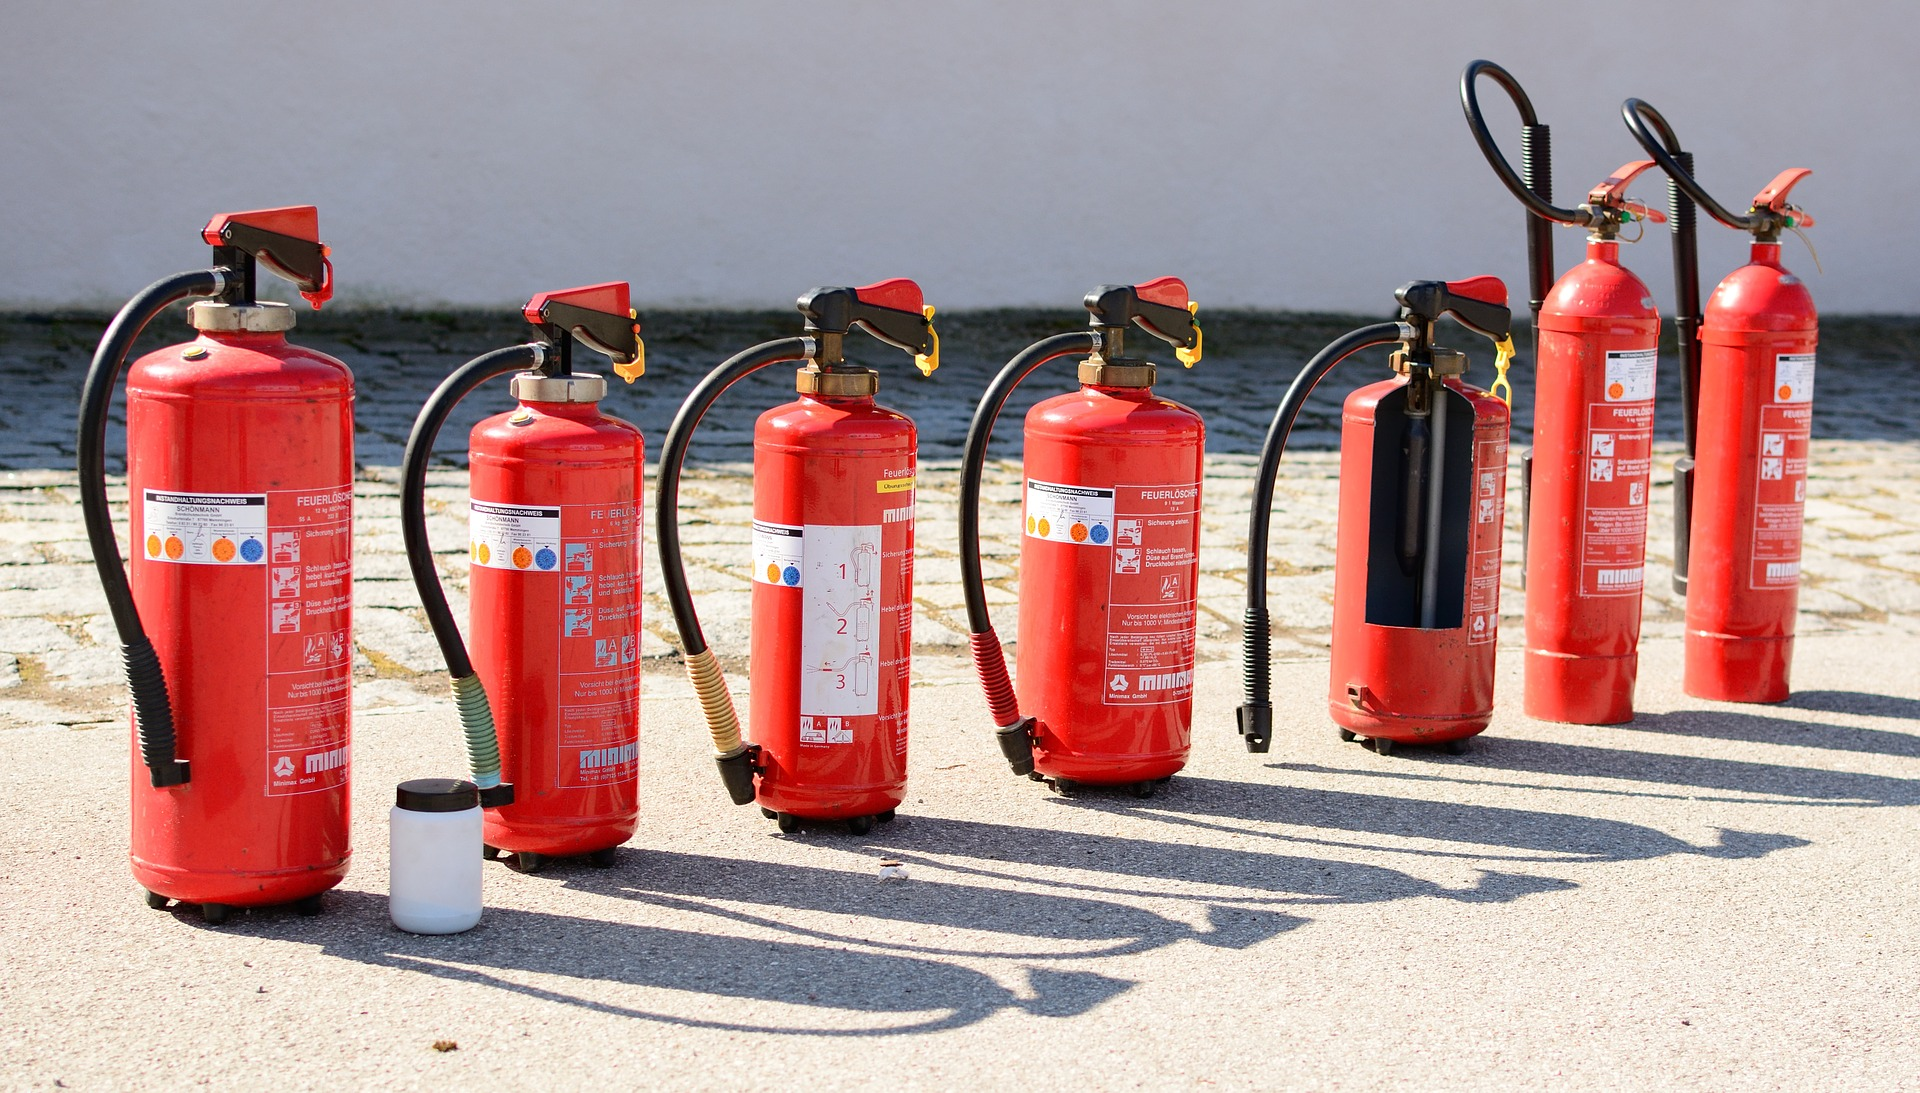 fire-extinguisher-712975_1920.jpg